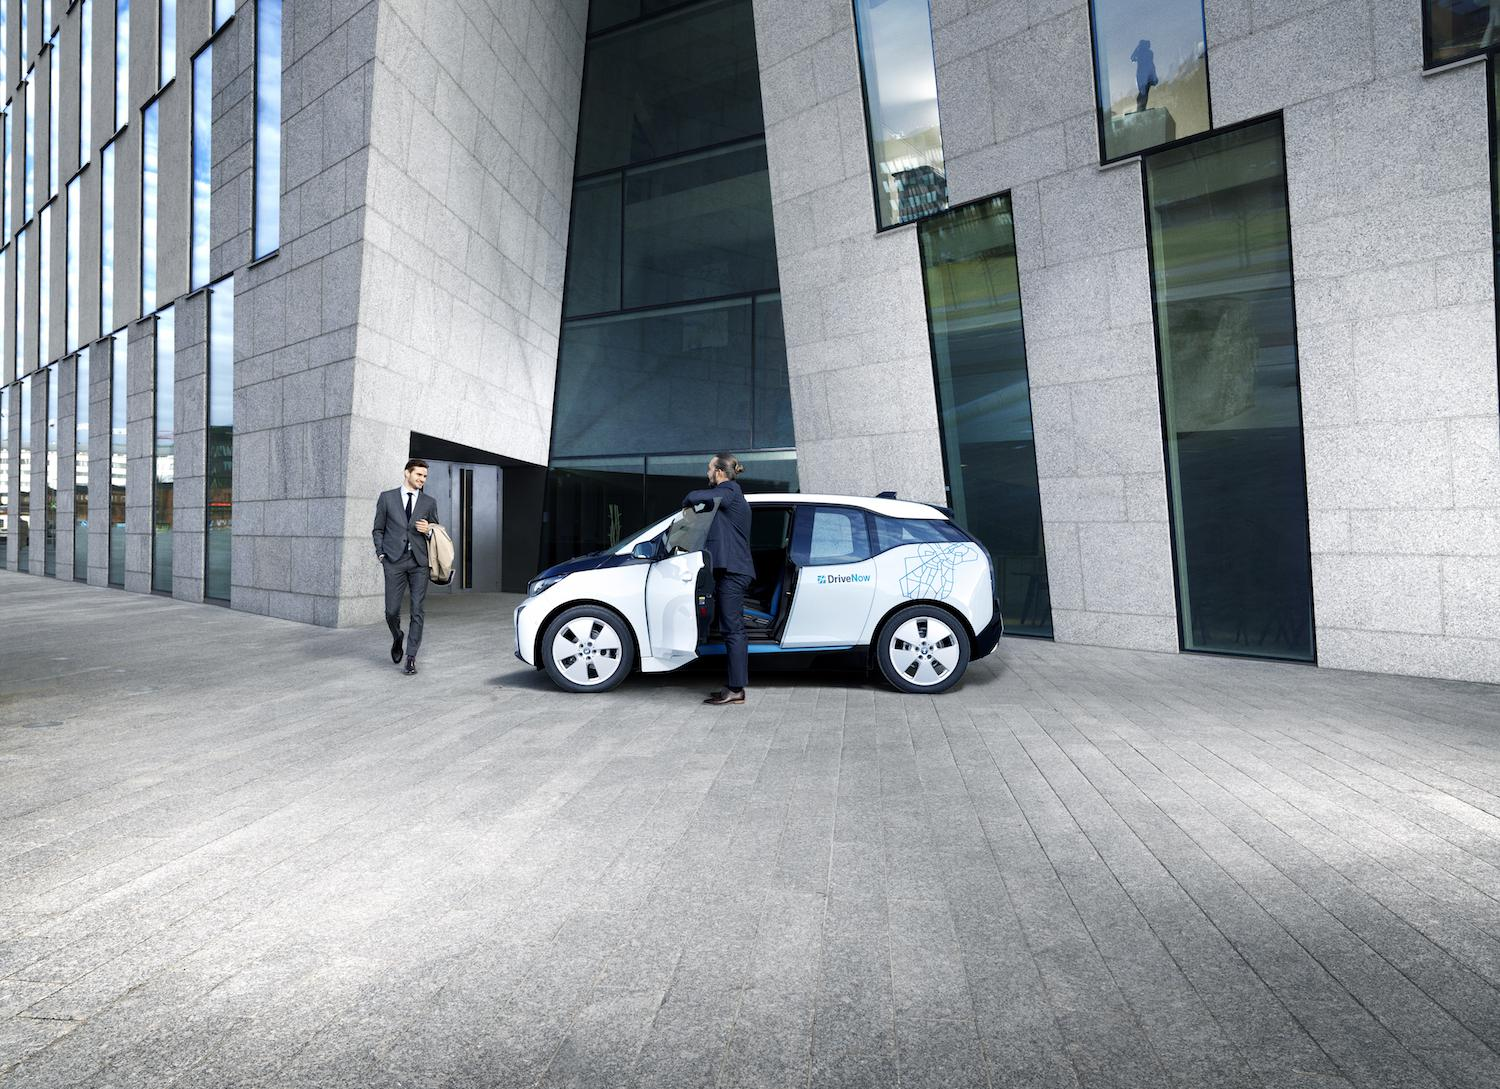 drivenow_helsinki_bmw_i3_business